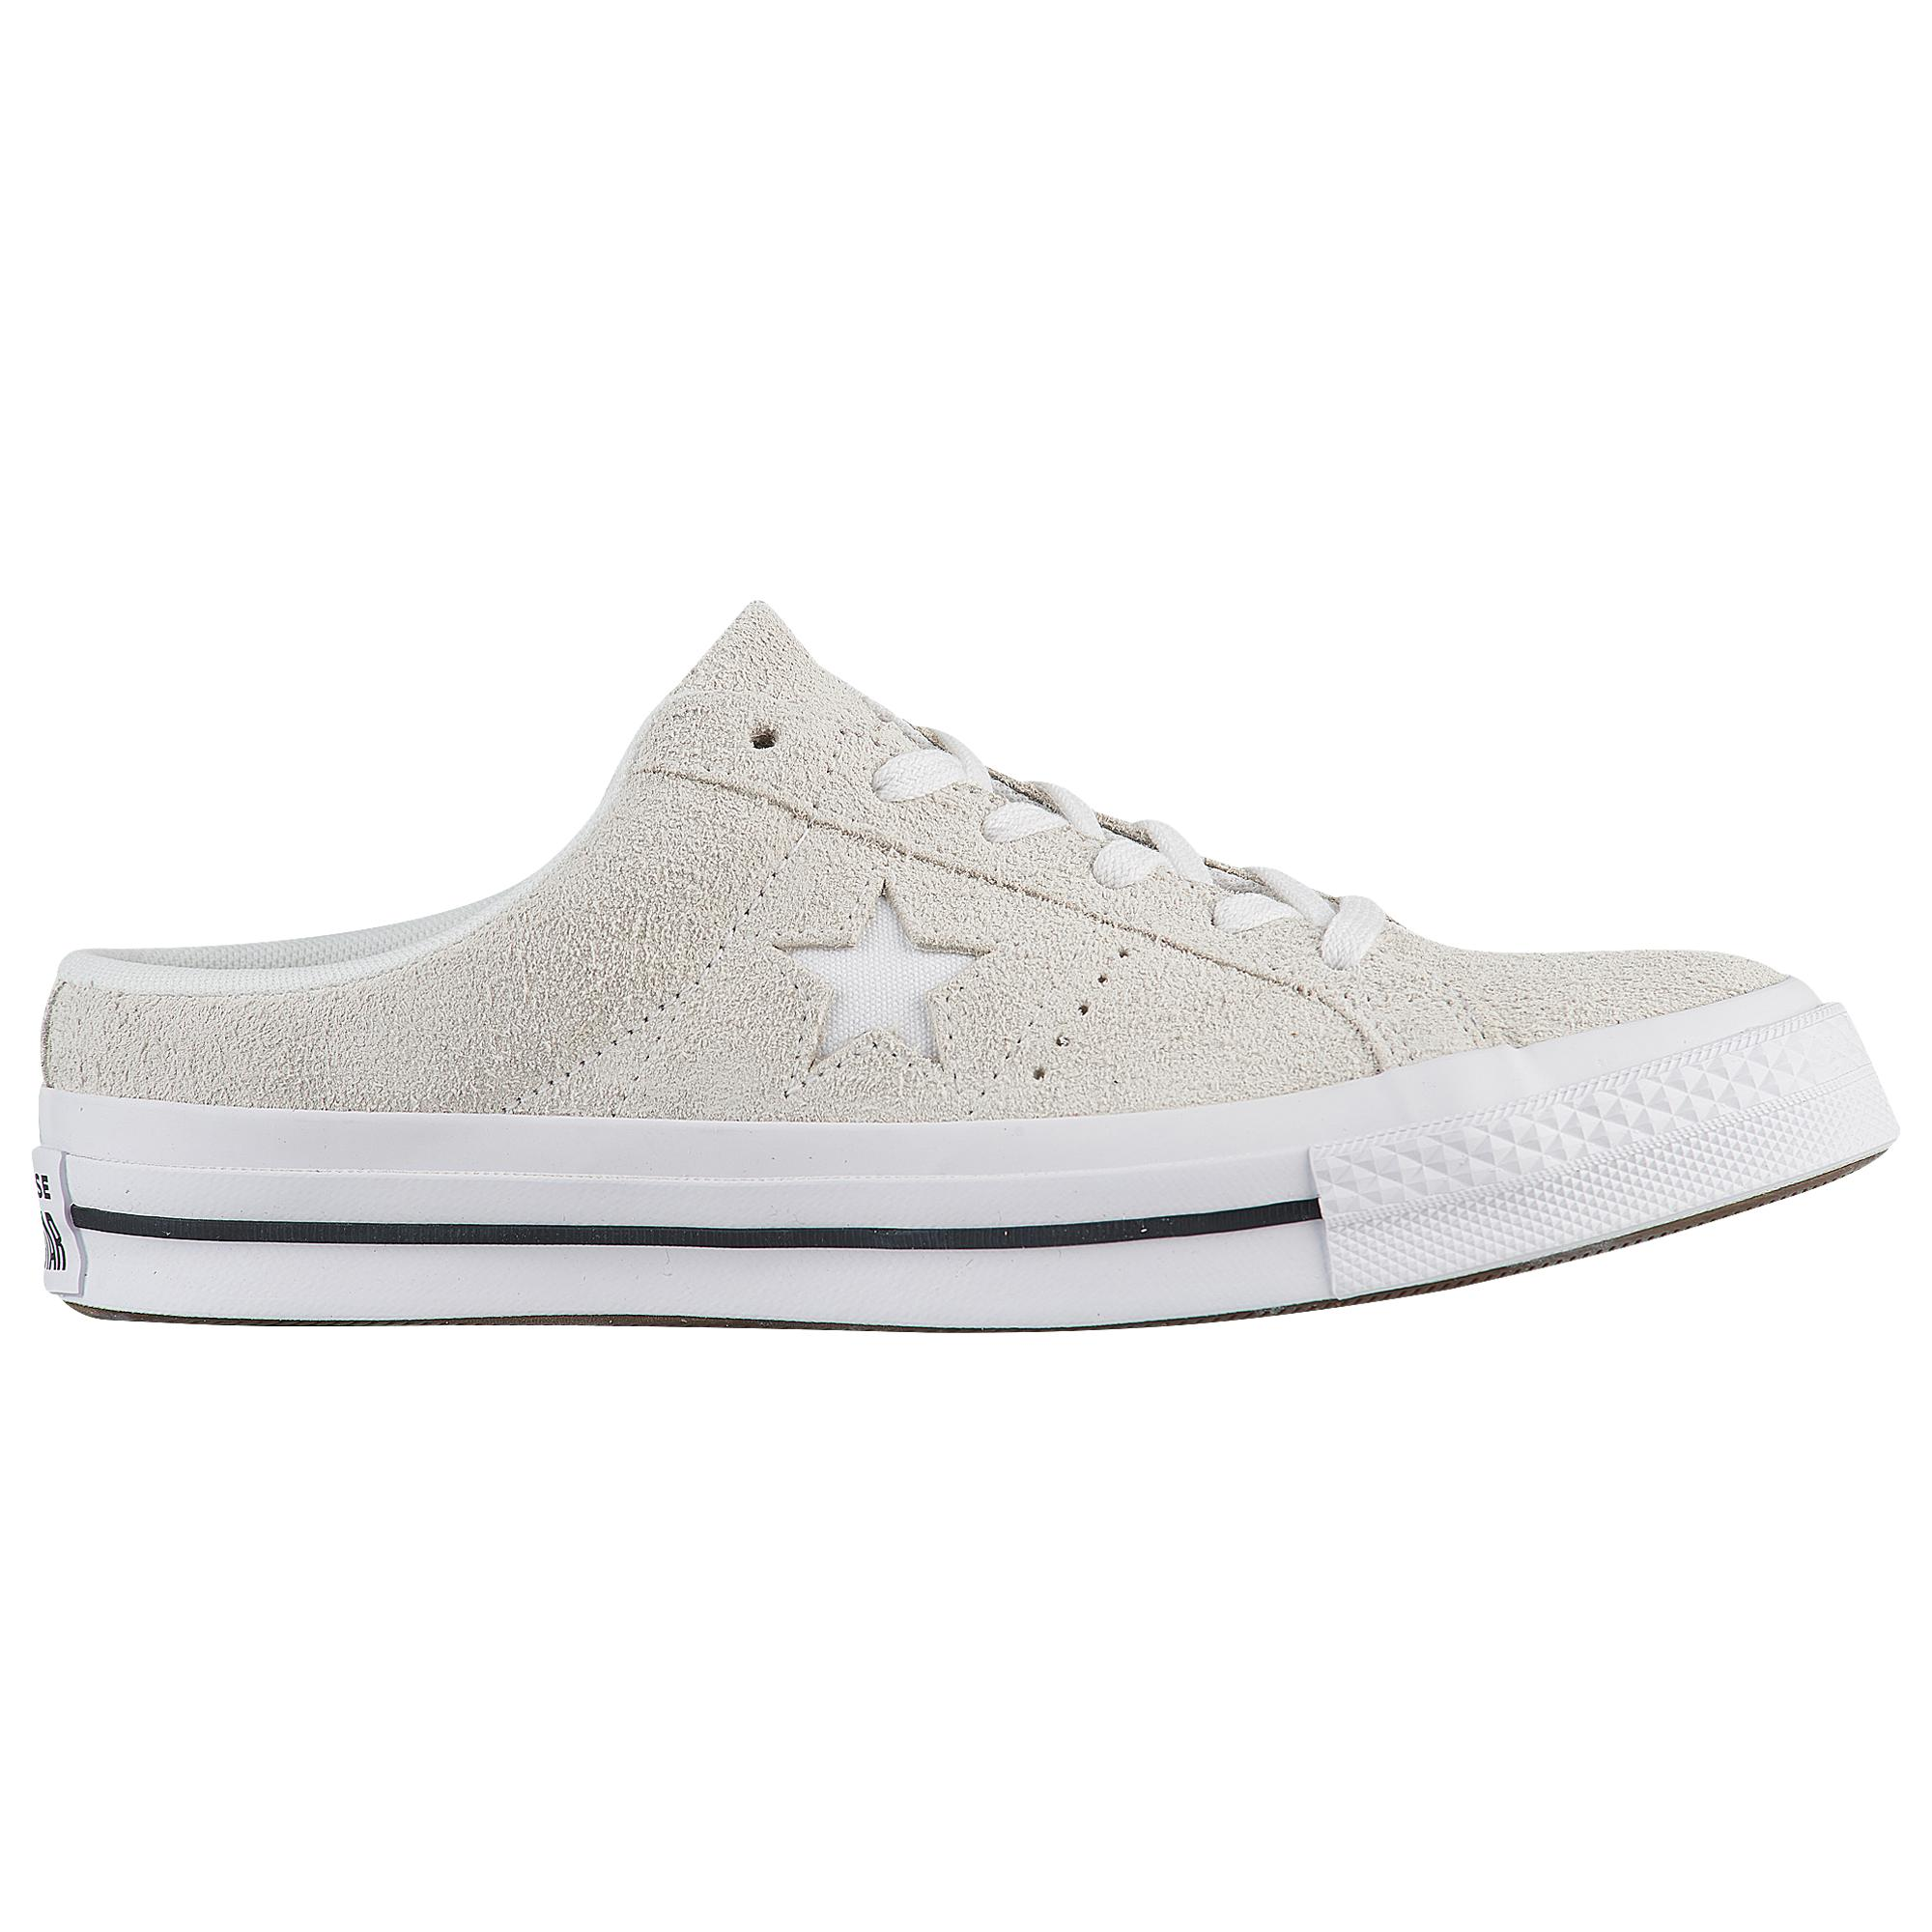 Converse One Star Mule Sneakers, Women's Fashion, Shoes